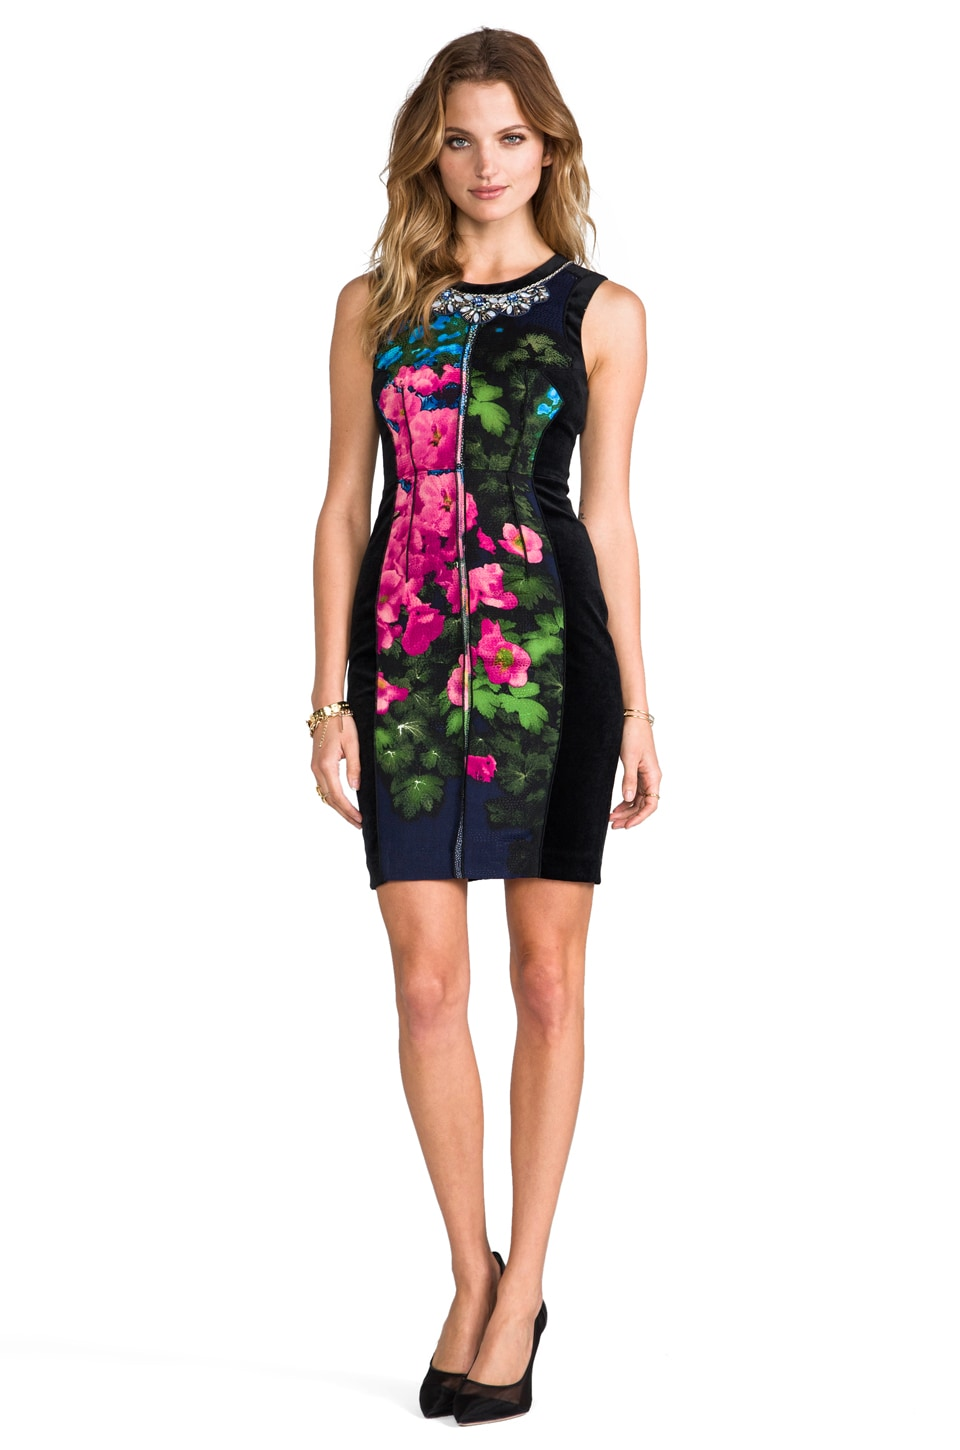 Tracy Reese Contrast Shift Dress in Hydrangea Placement